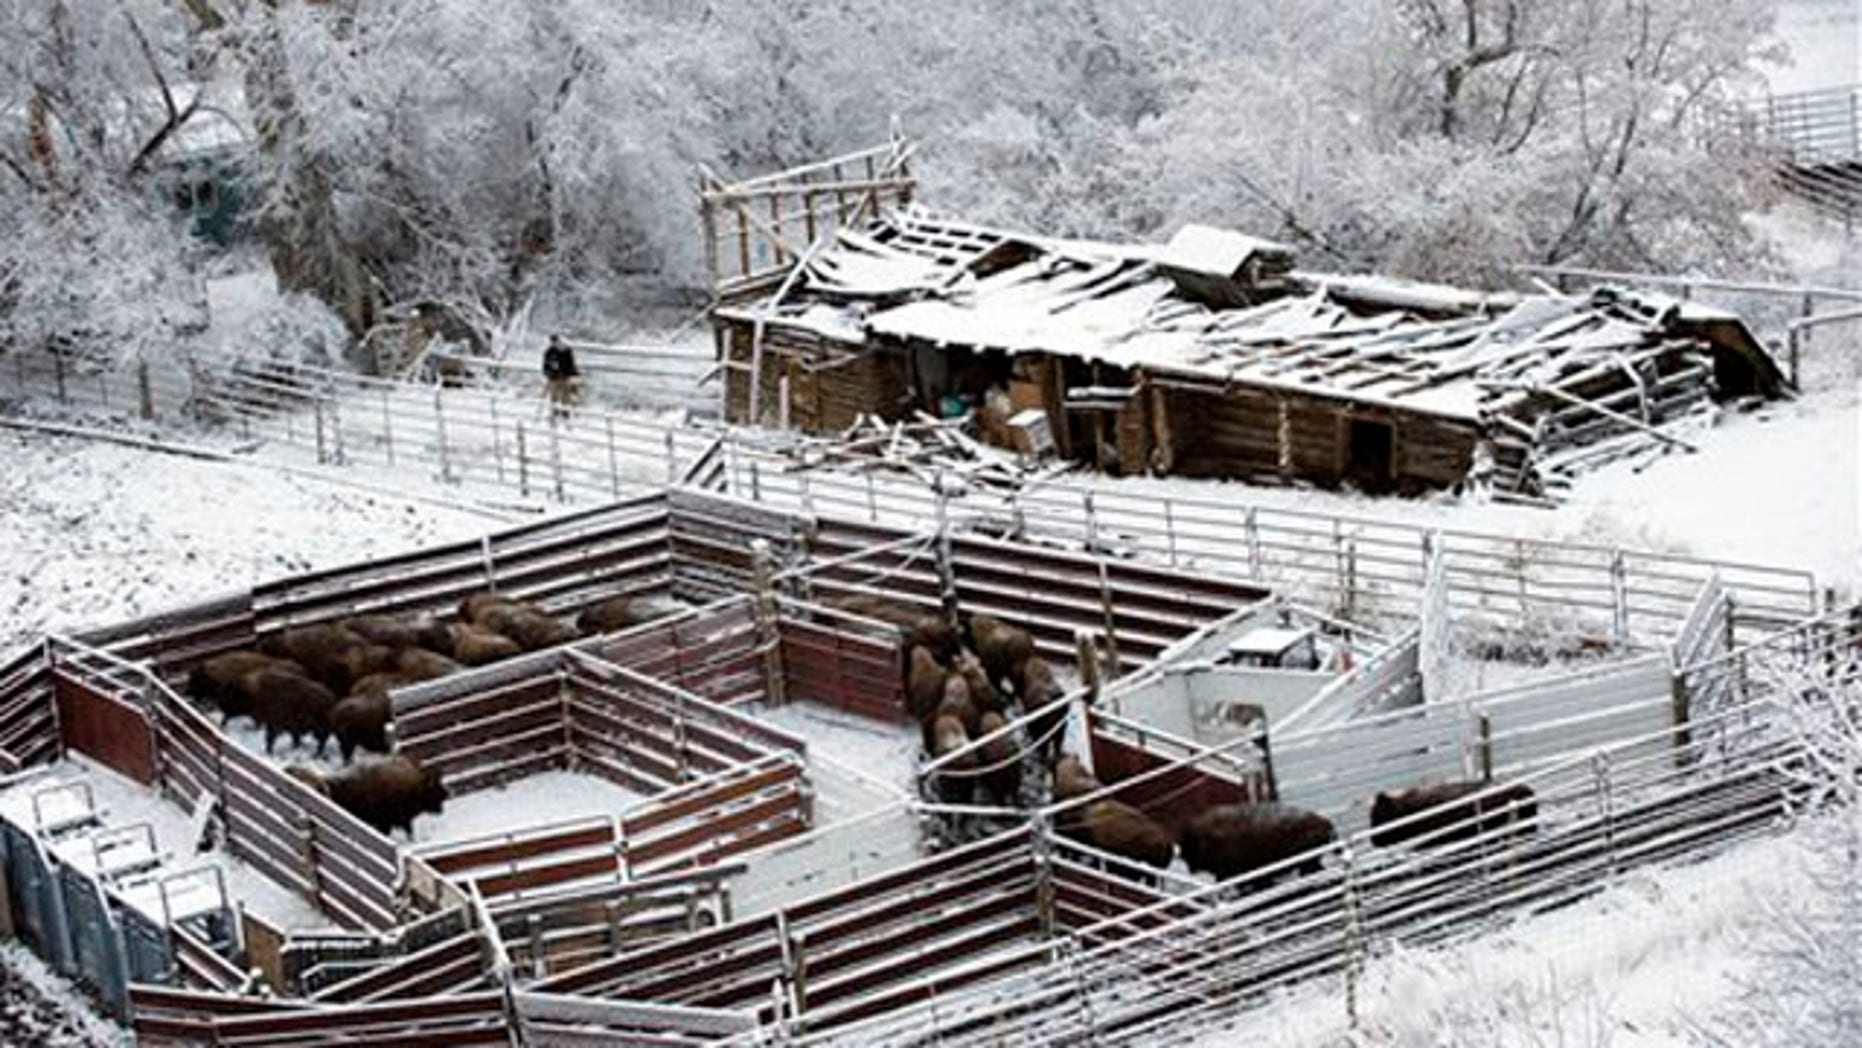 March 19, 2012 : This shows bison entering a holding pen at the Rigler Quarantine Facility near Gardiner, Mont.